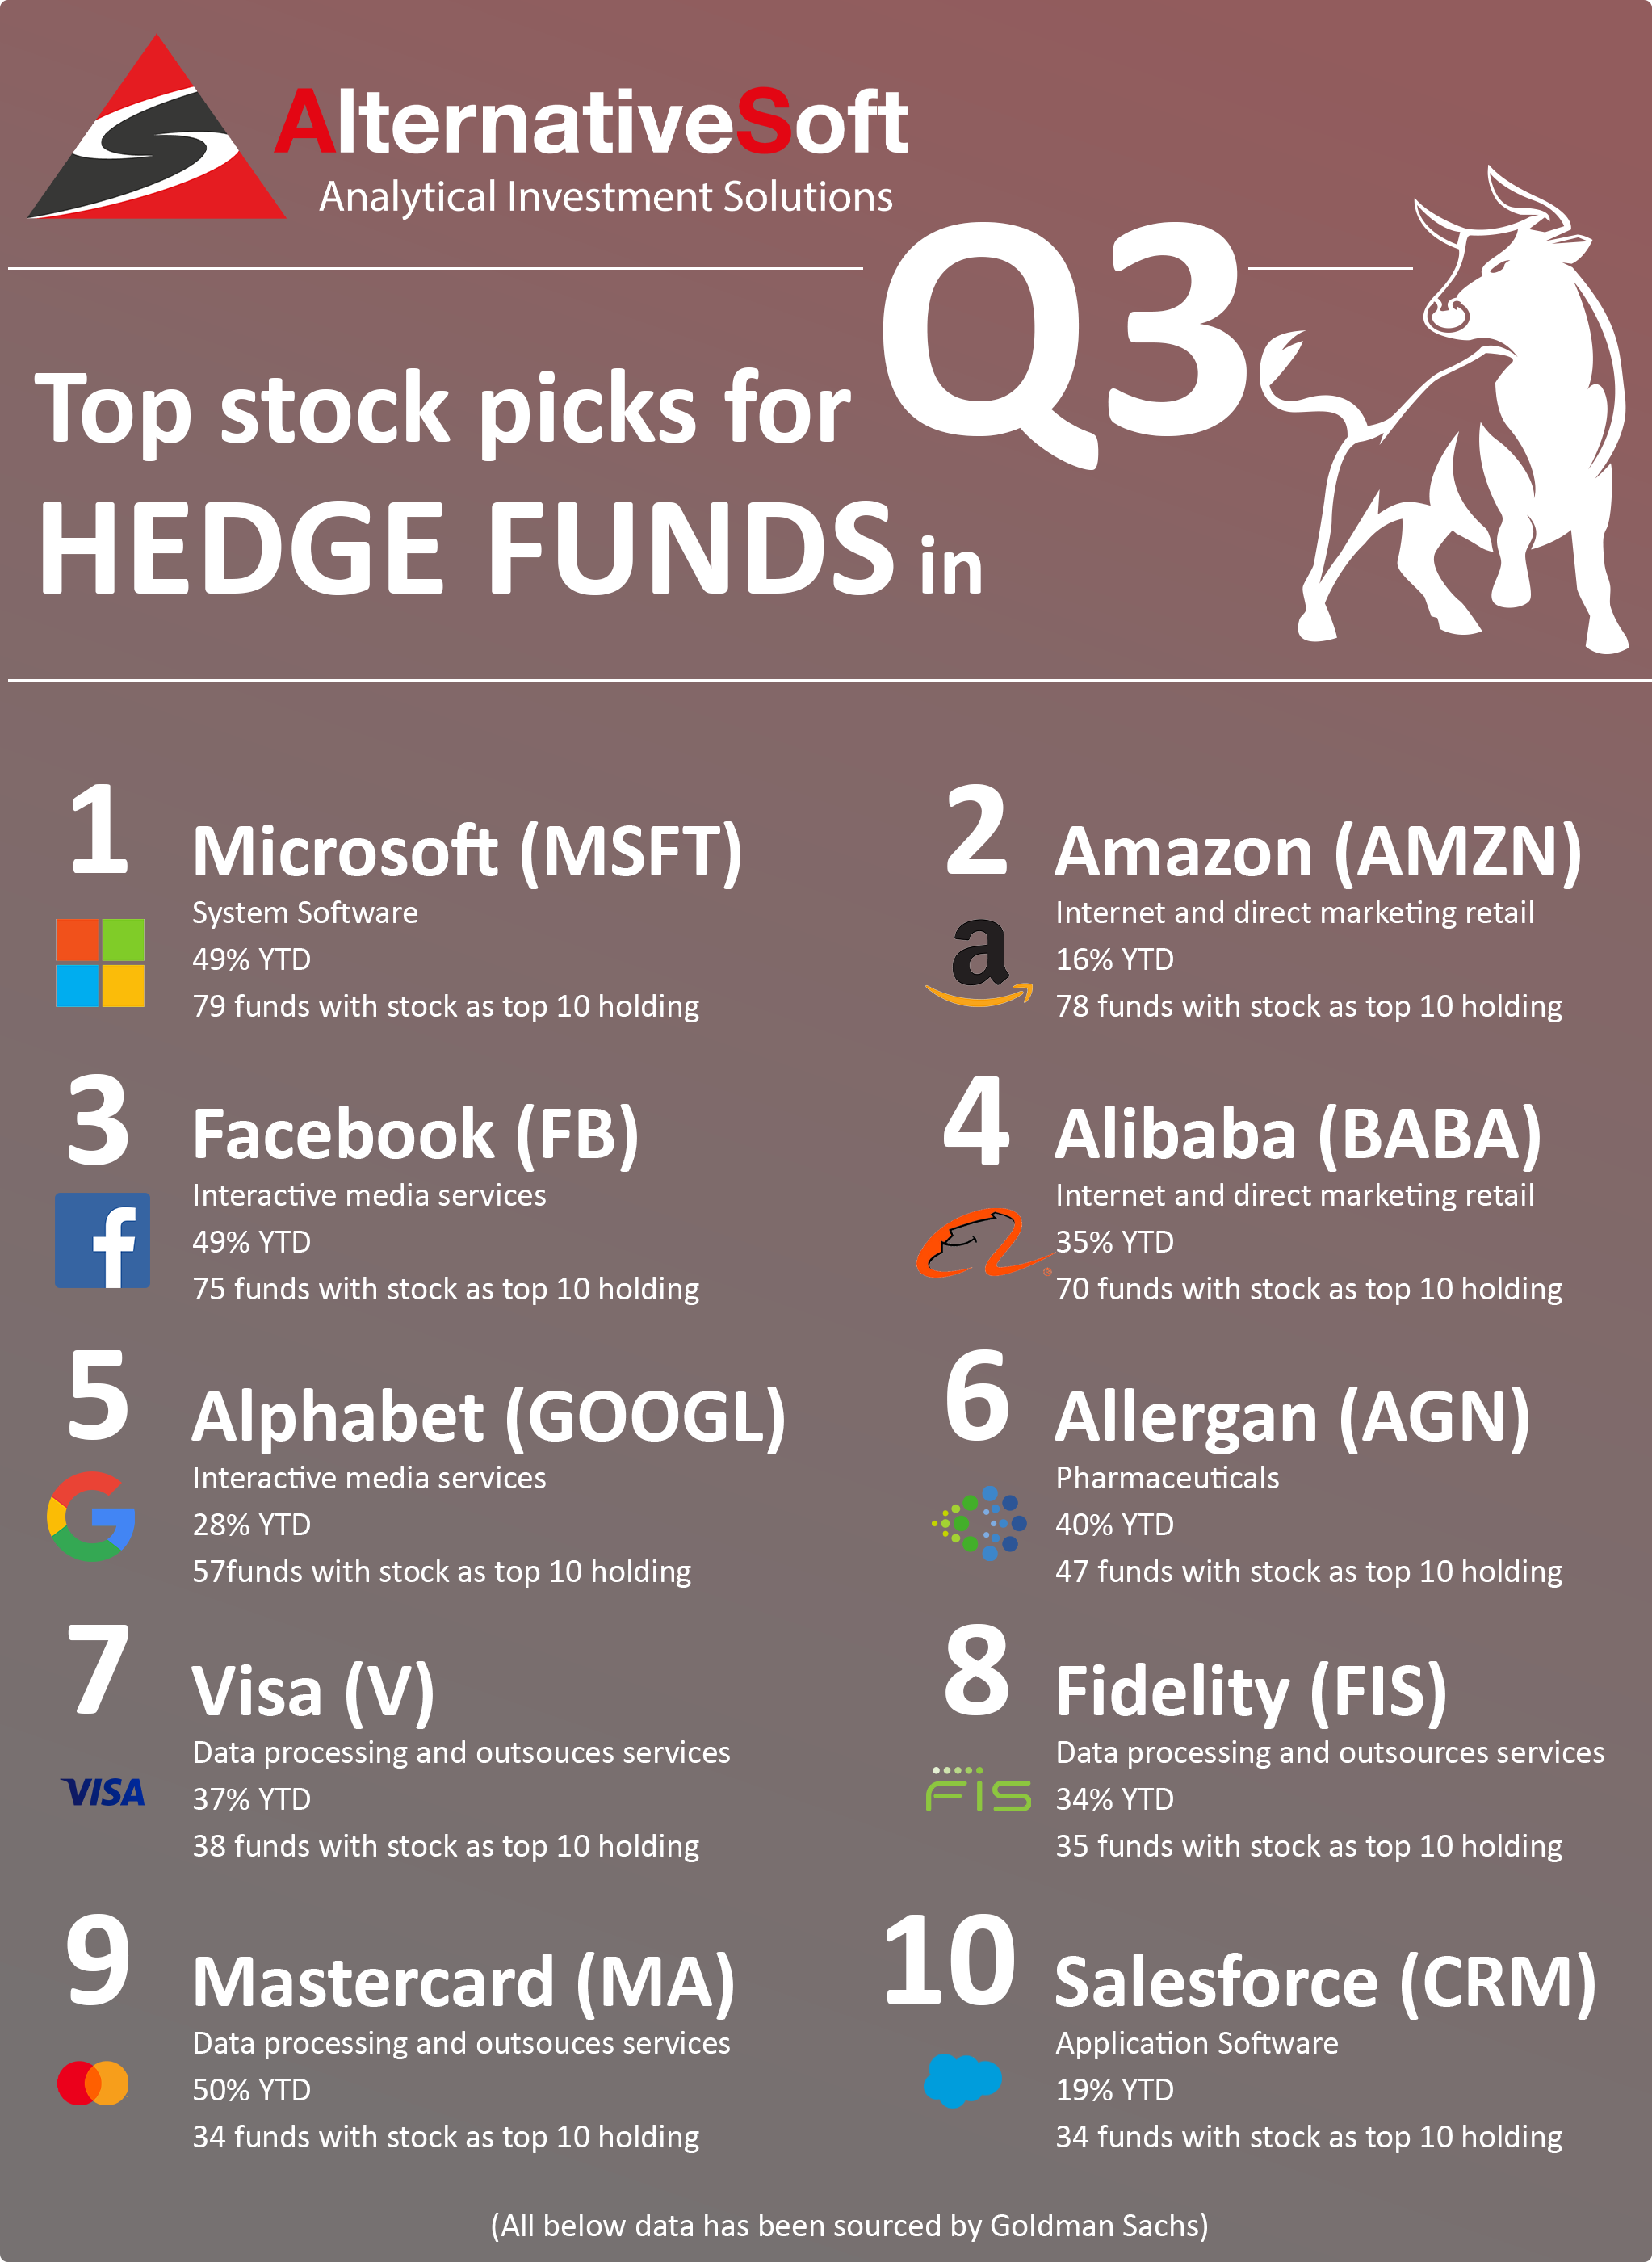 Top Stocks Picks for Hedge Funds Q3